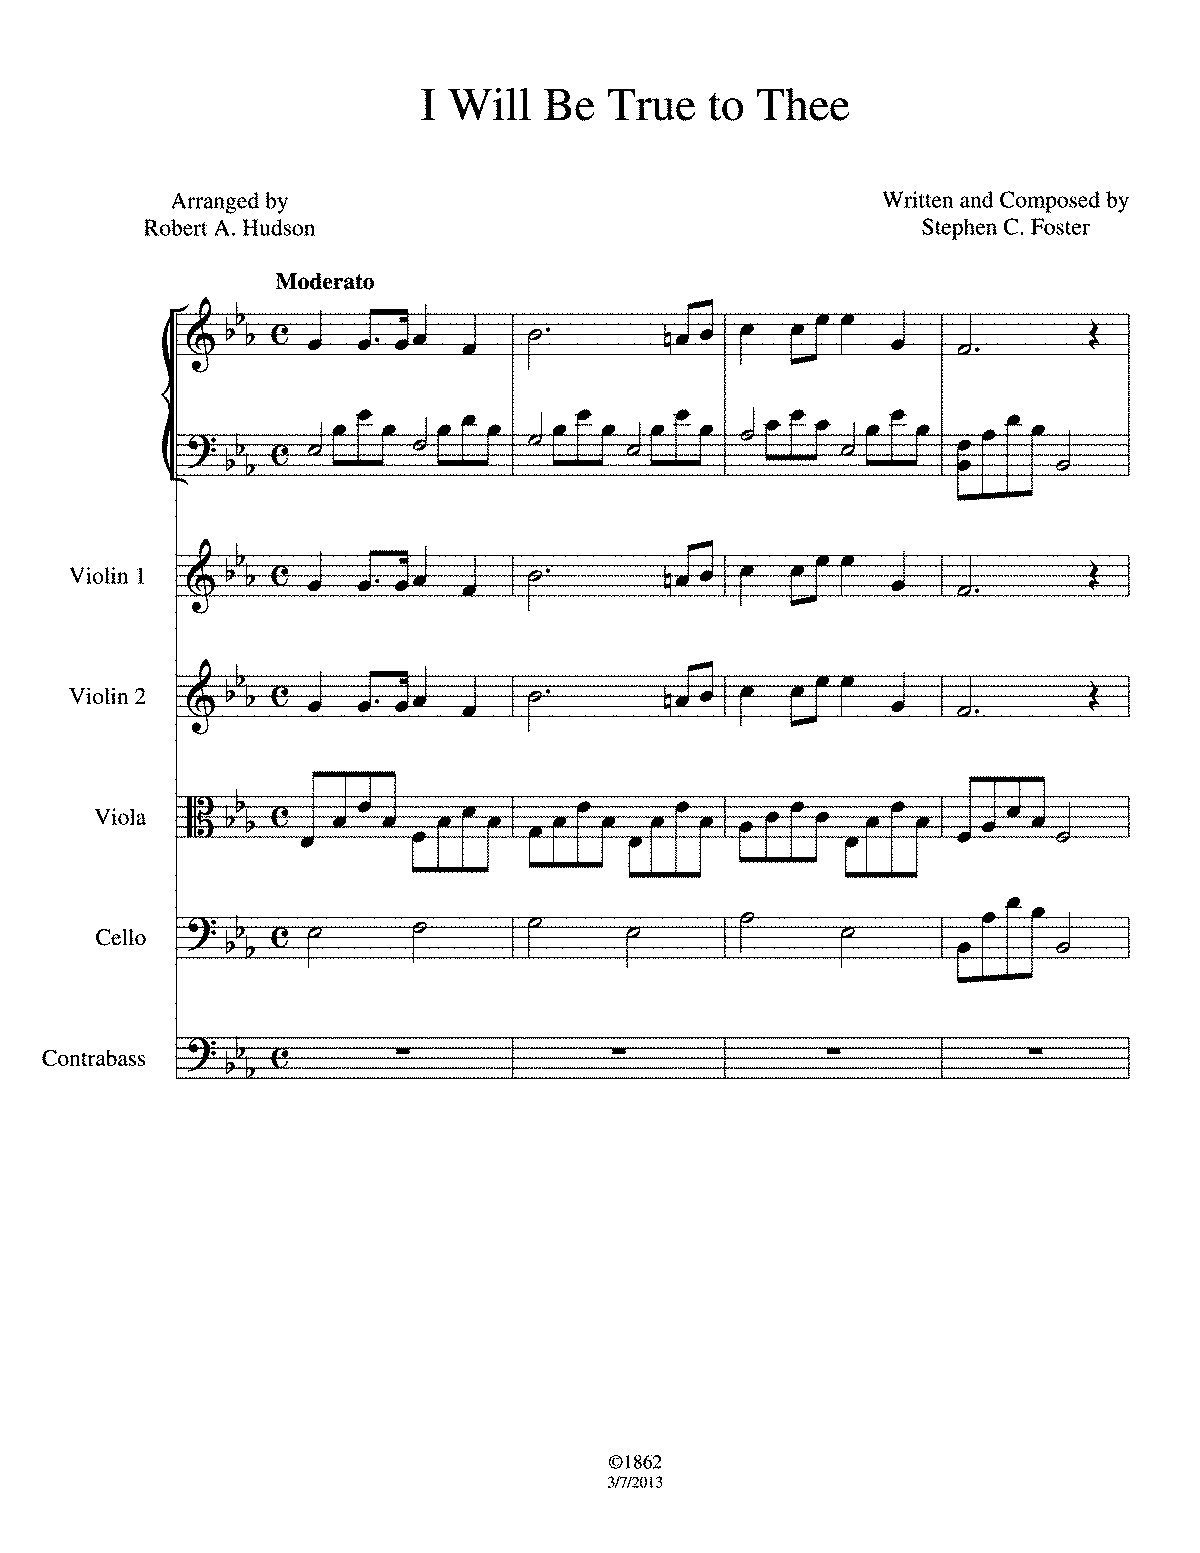 PMLP314342-I Will Be True to Thee Conductors Score.pdf